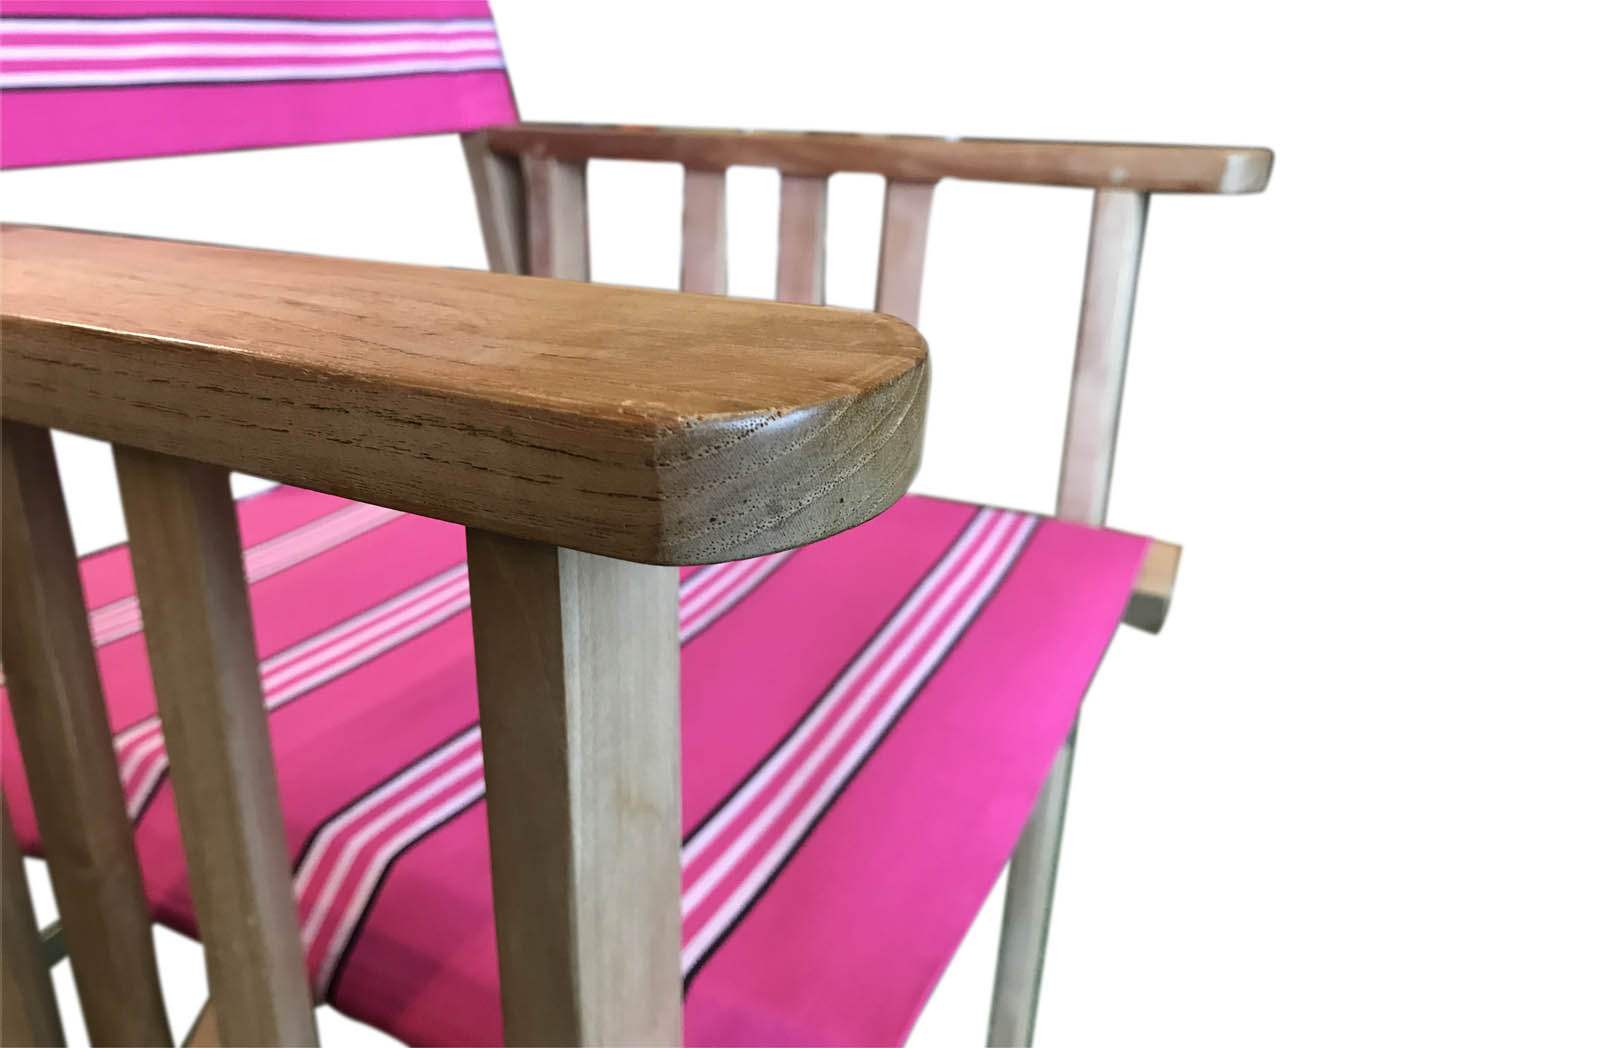 Pink Stripe Teak Directors Chairs With Covers Of Wide Pink Stripes  Interspersed With Three Thin White Stripes Edged In Black For A Very  Striking Directors ...